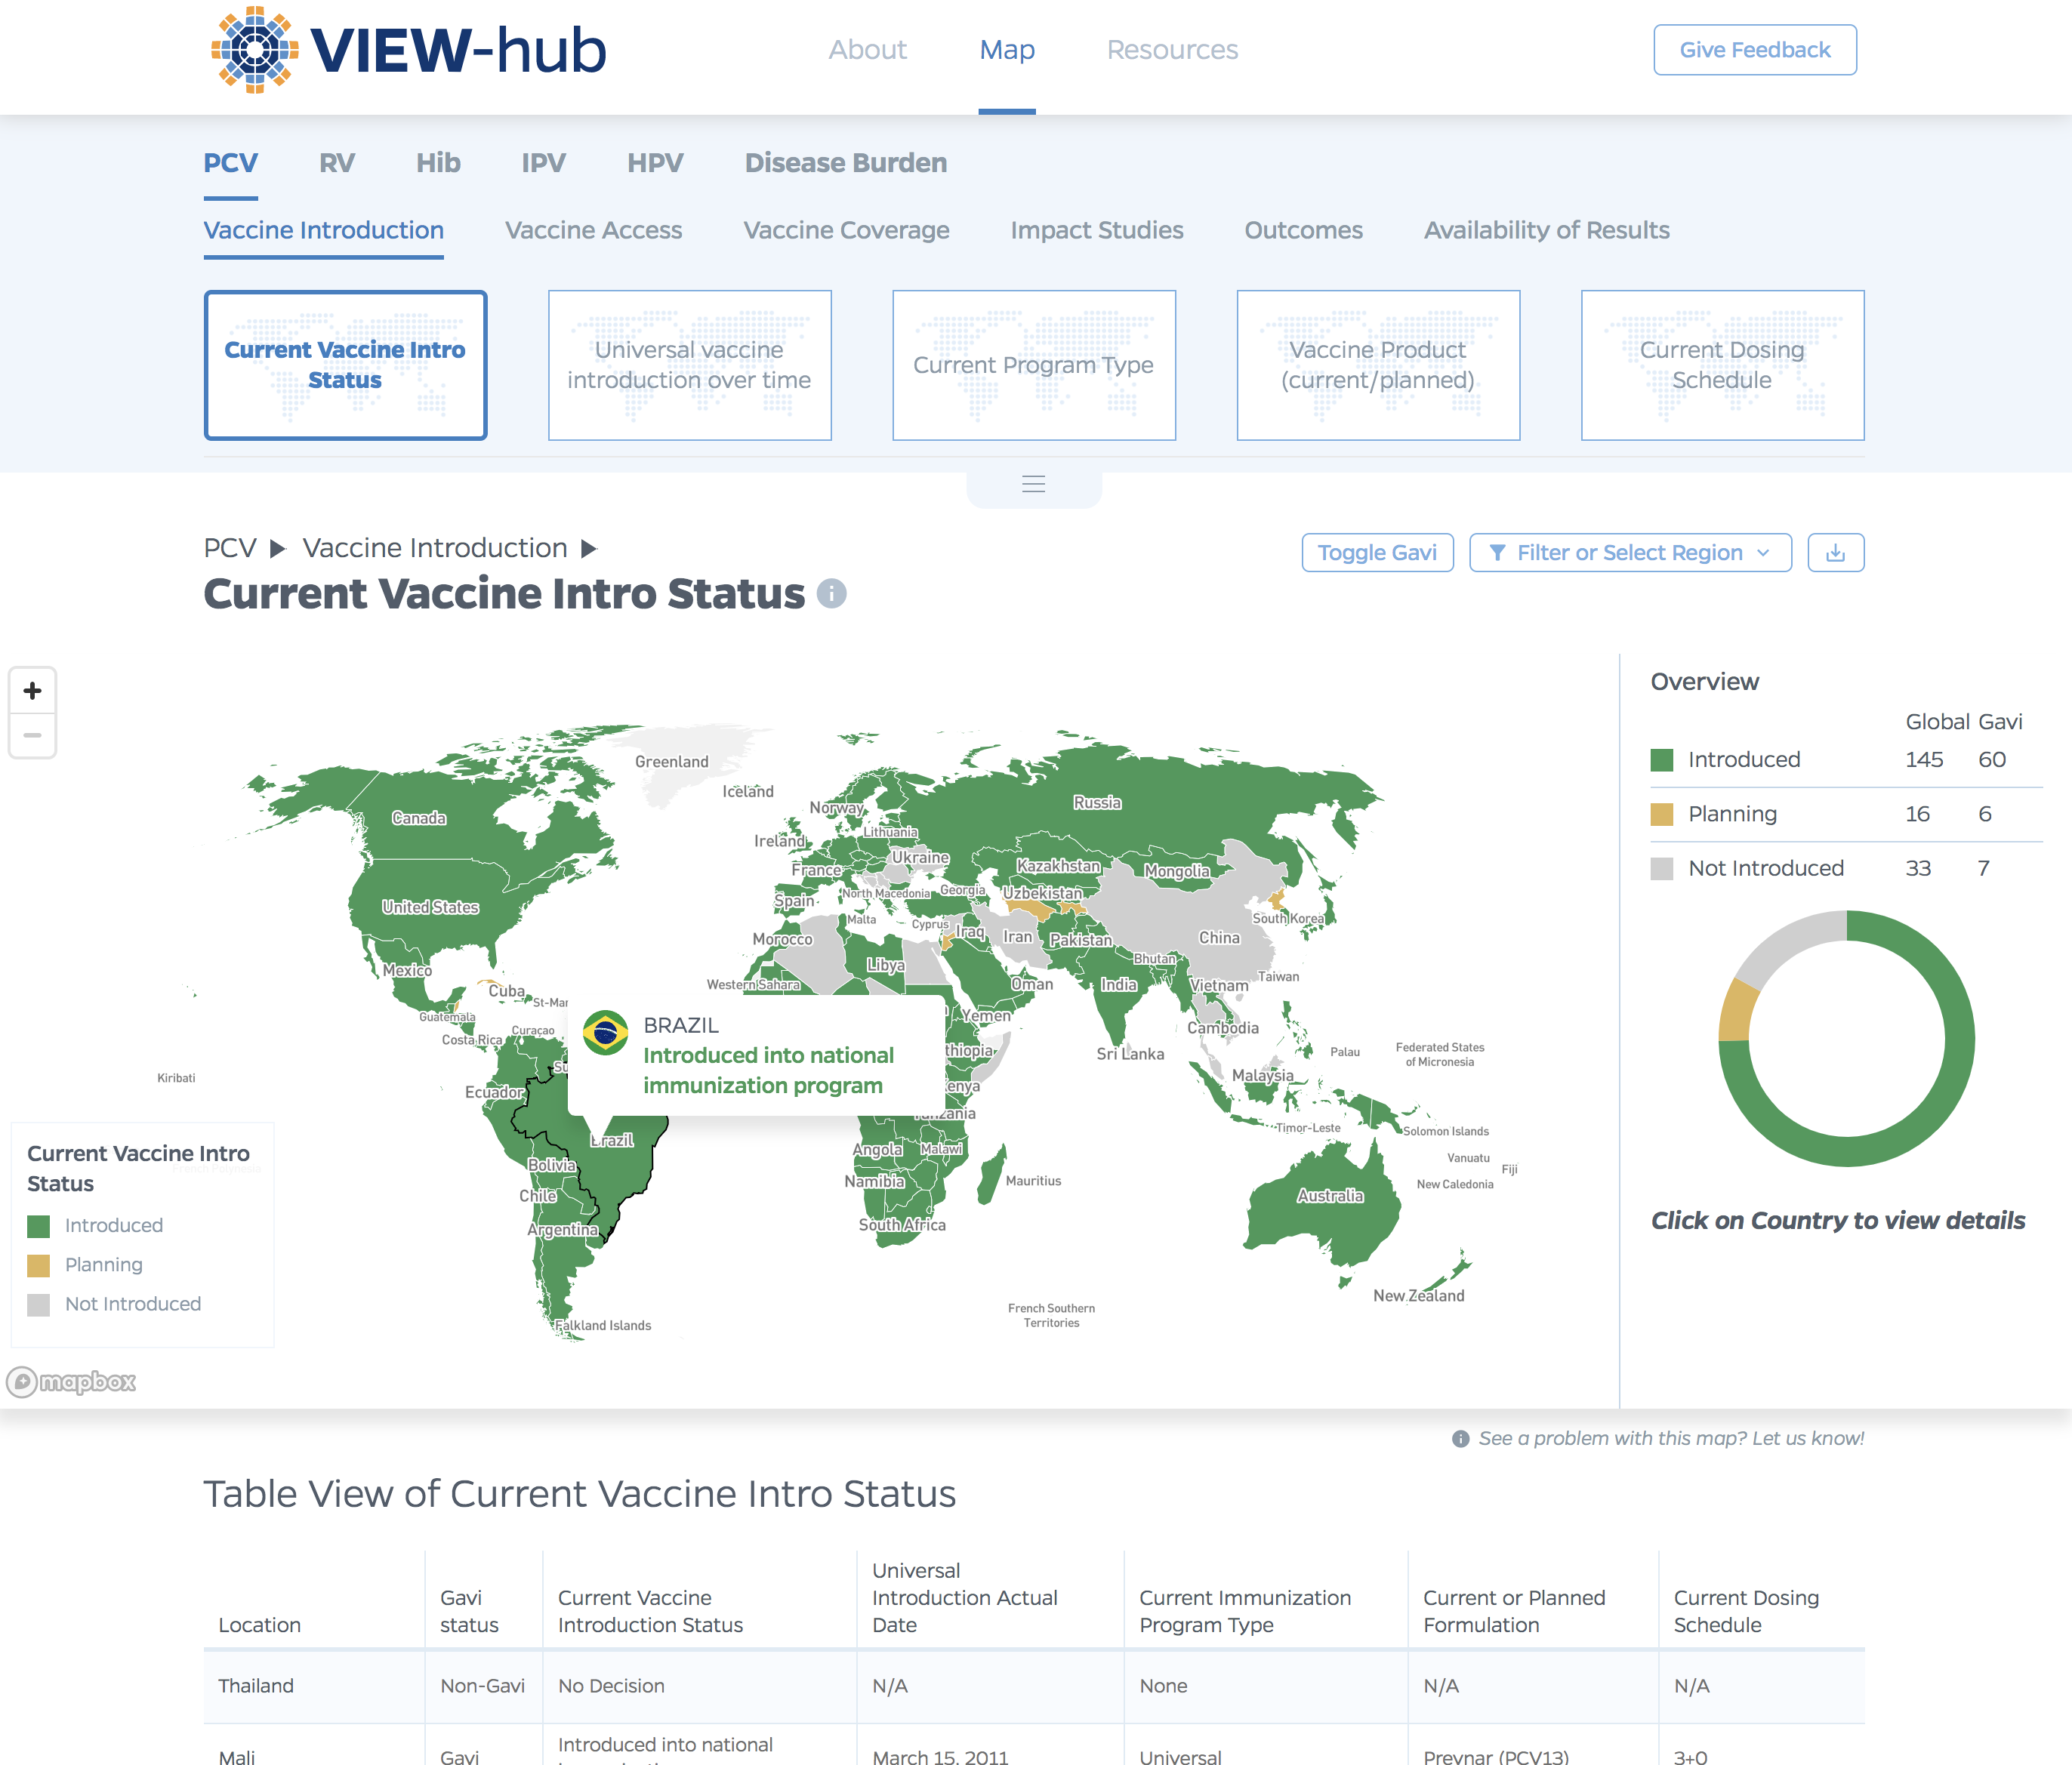 VIEW-hub website design